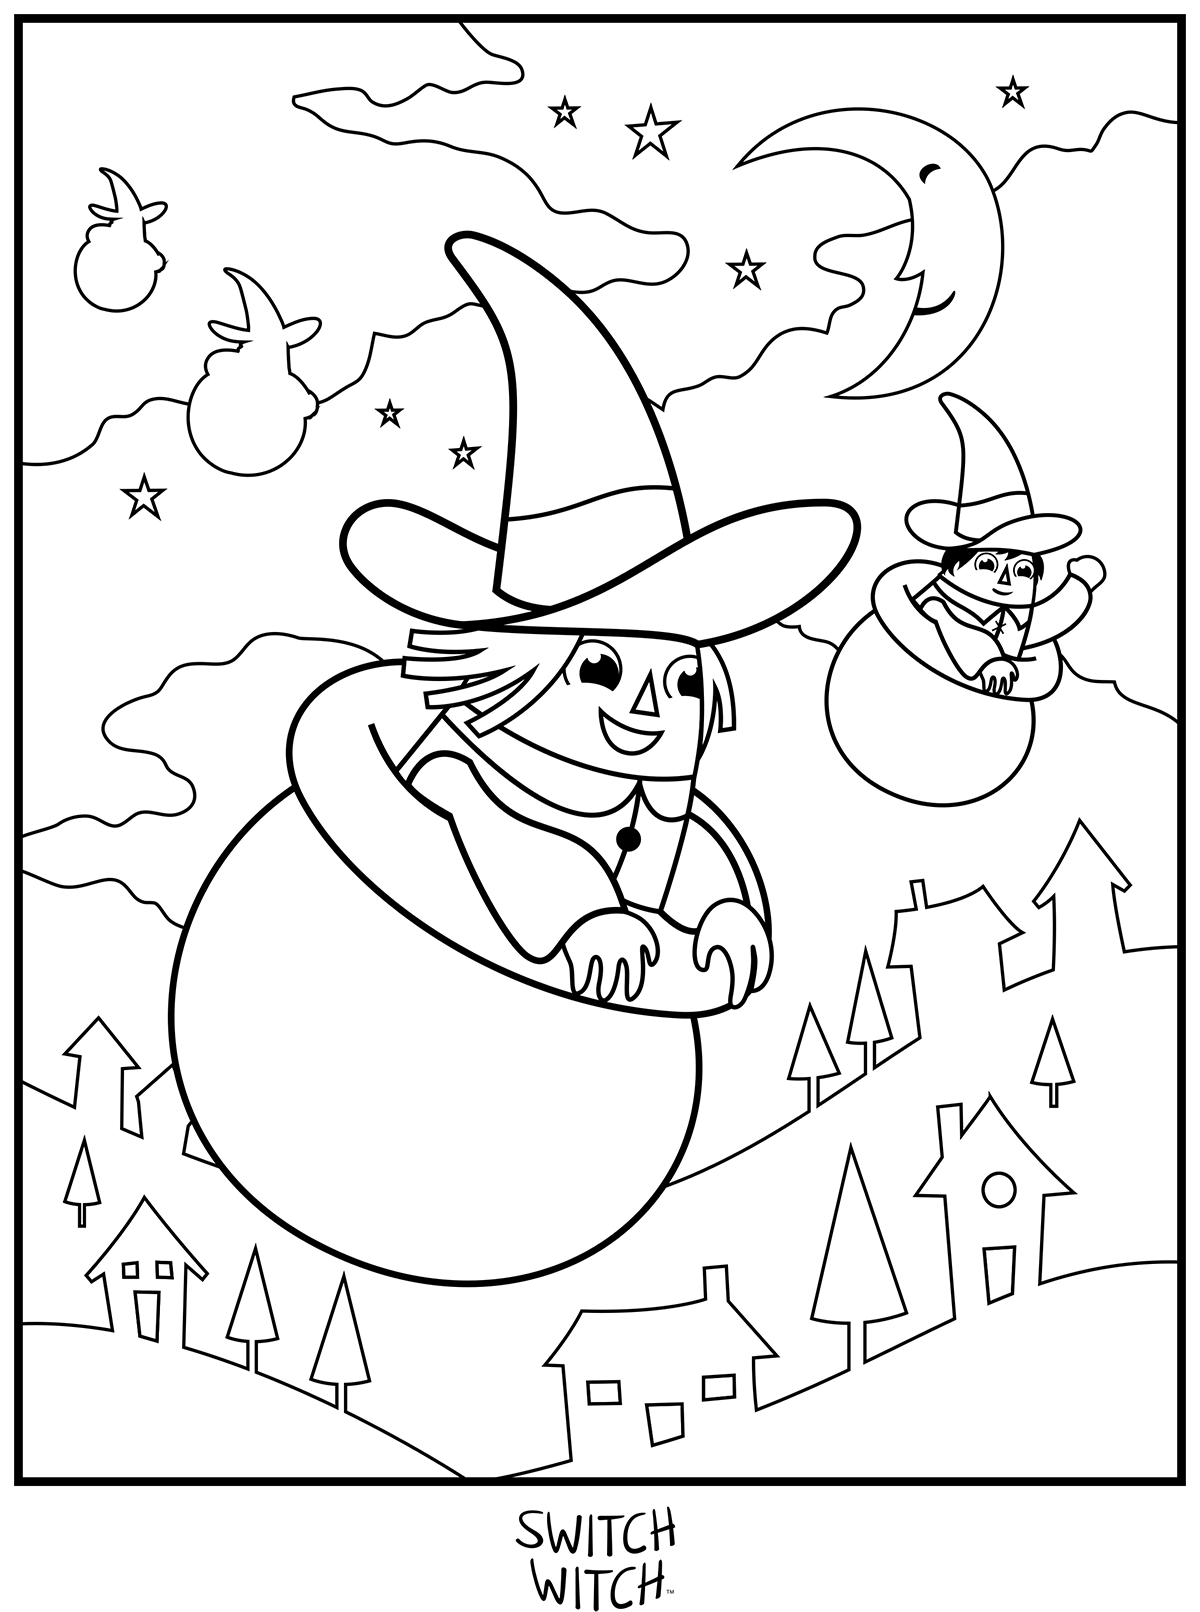 Switch-Witch-Coloring-Page-01-PNG.png